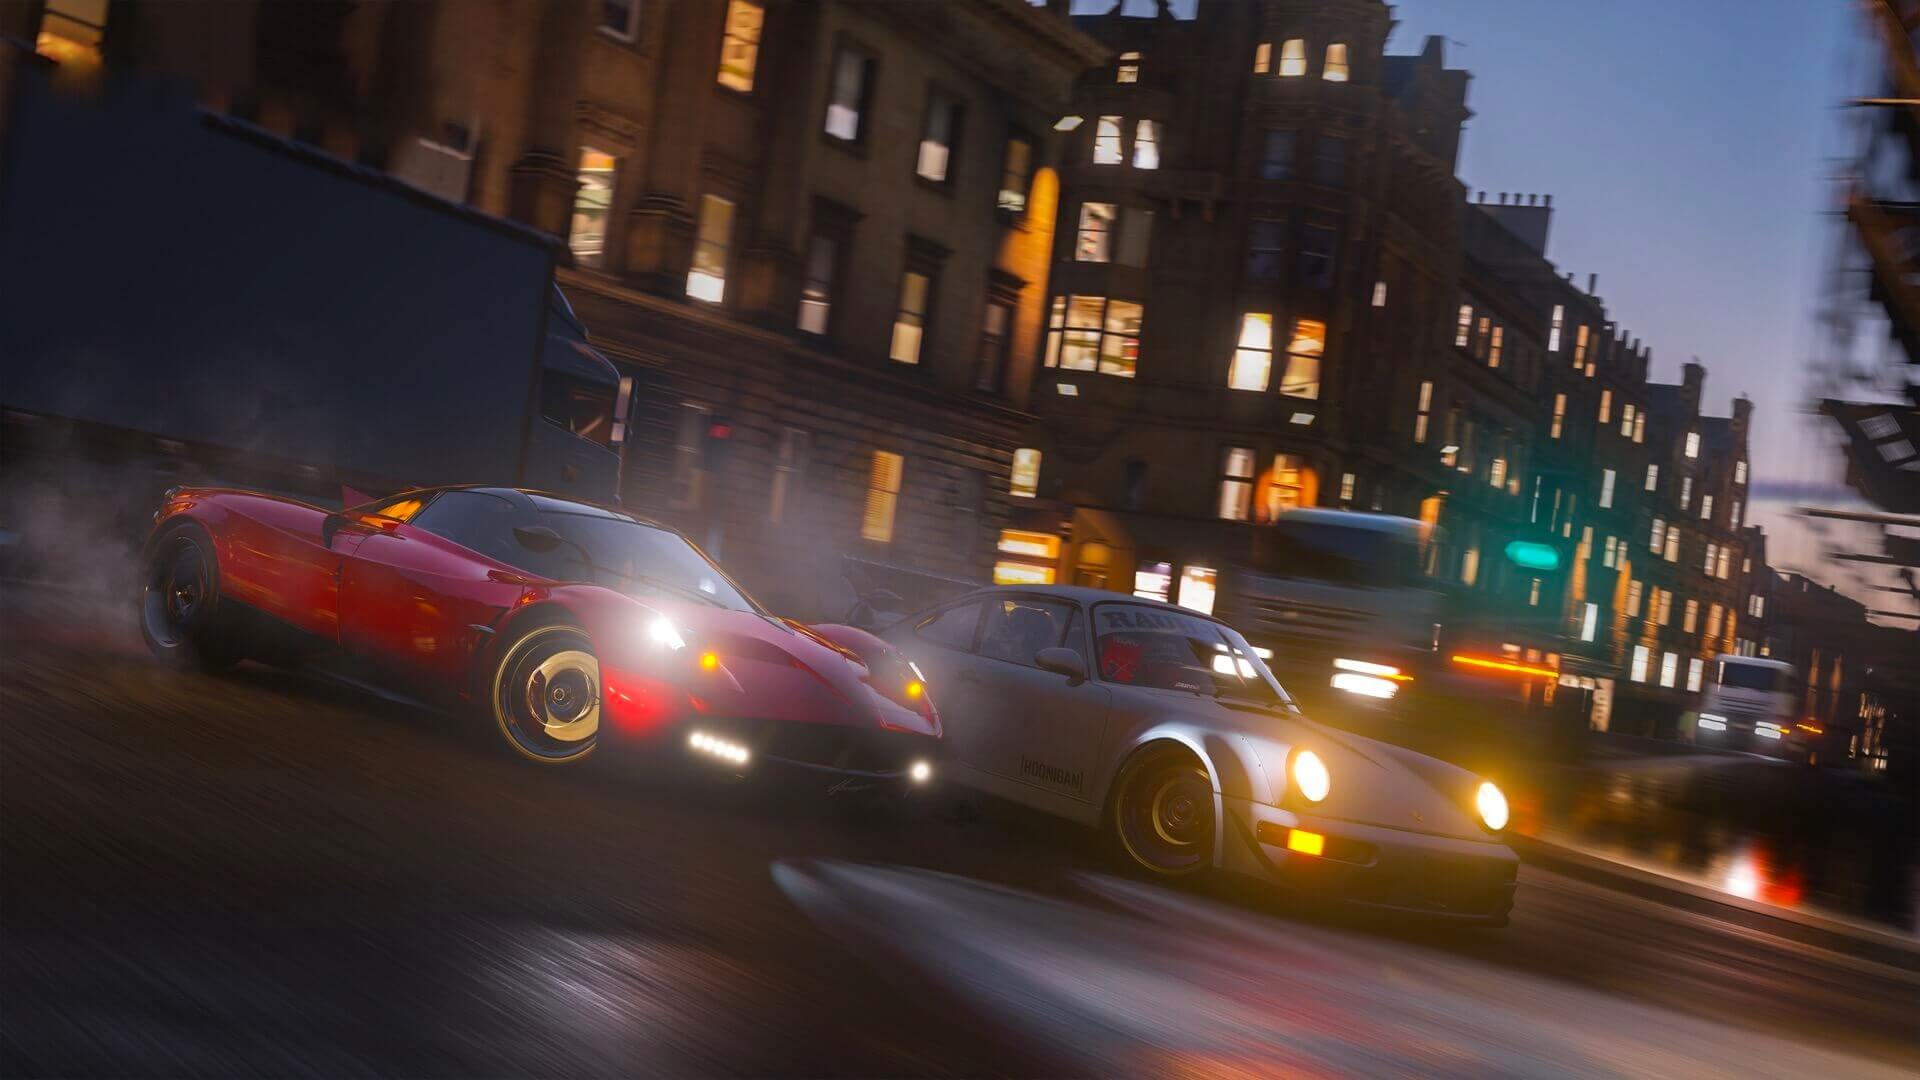 Forza Horizon 4 Benchmarked Graphics Performance Tested Techspot New Xbox 360 Uses 45nm Chip With Combined Cpu Gpu 2 And To Work Out What Kind Of Power Youll Need Enjoy It Weve About 50 Cards So We Have A Big Benchmark Incoming